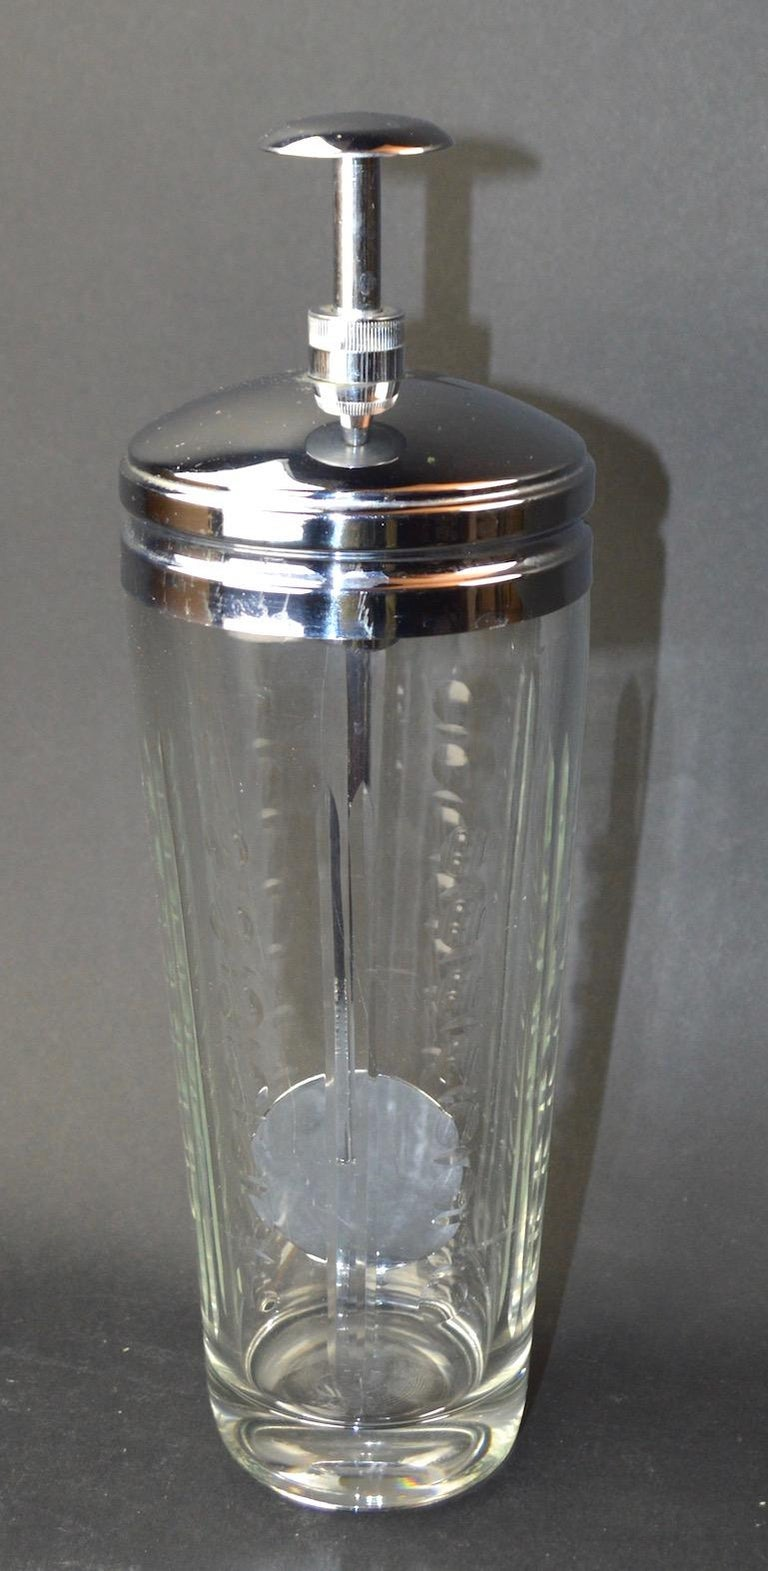 Etched and pressed glass body with bright chrome CAP and mechanical twist mixer element. Push the top knob down and the chrome paddle will spin, making the perfect mixed drink every time. Great novelty item form the Machine Age period, bears pat.